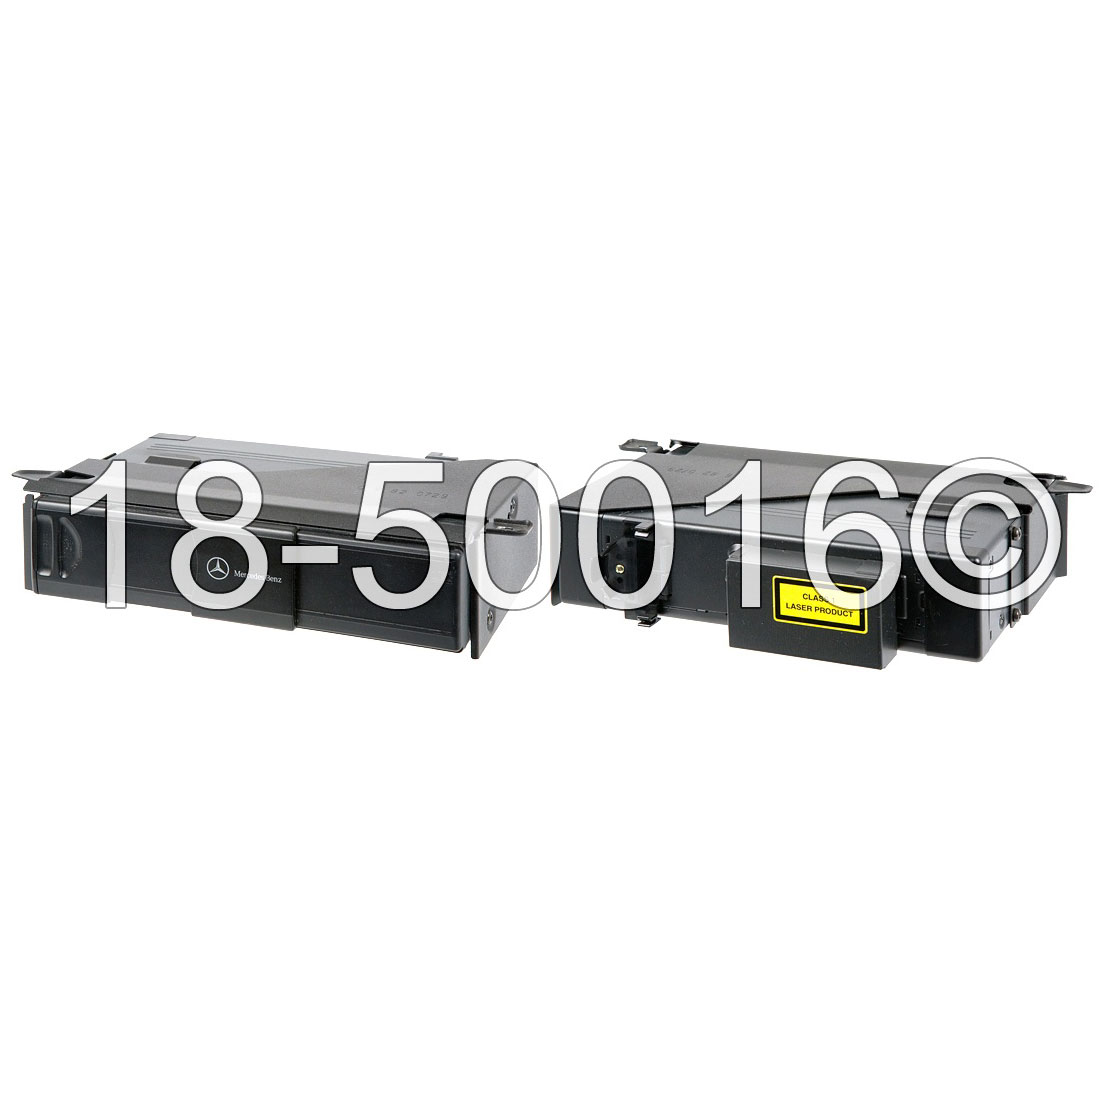 Mercedes_Benz CLK320                         CD or DVD ChangerCD or DVD Changer